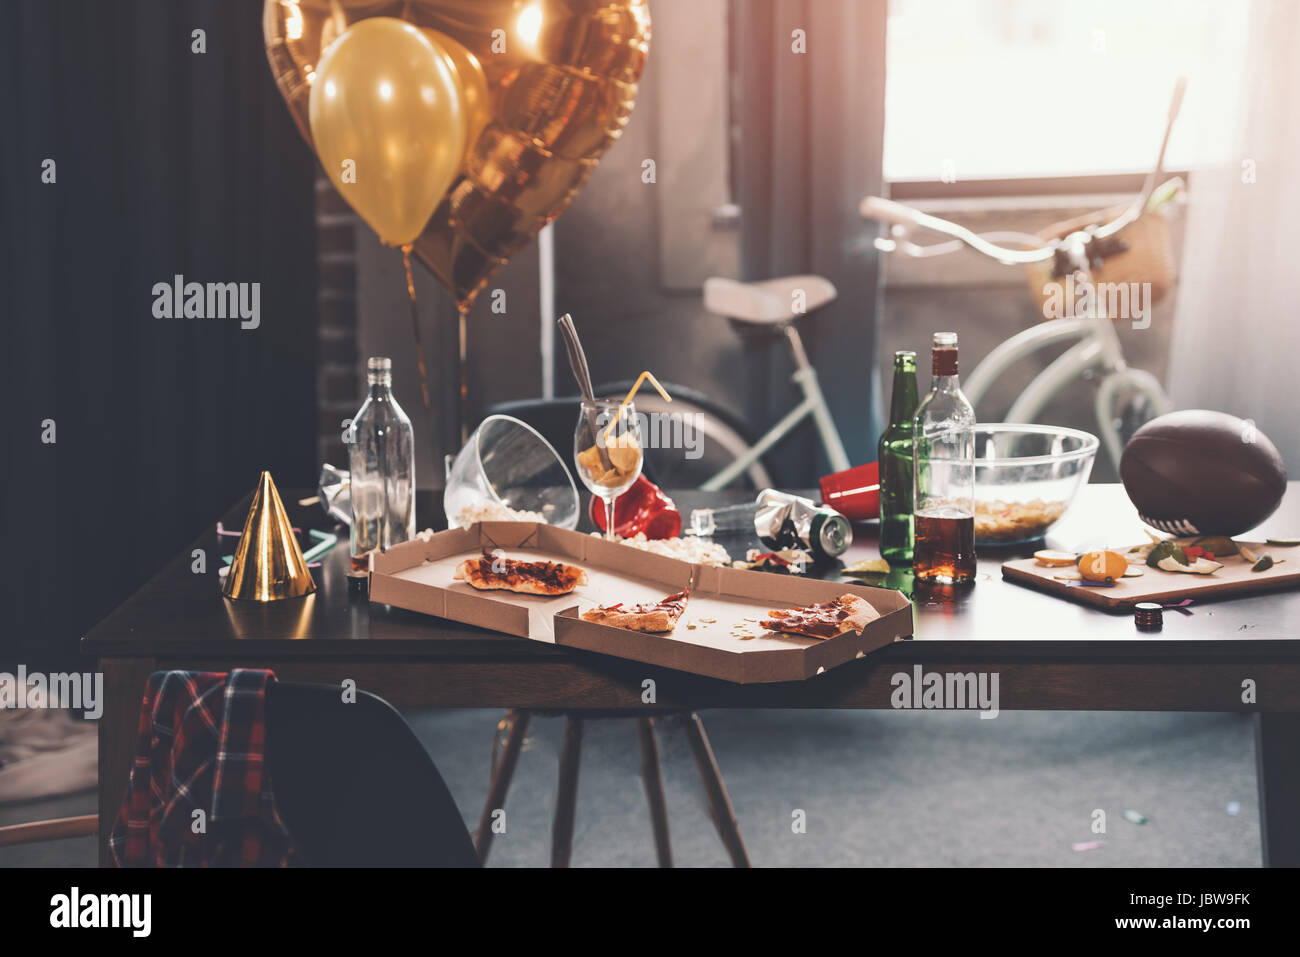 Messy table with pizza in box and beverages at morning after party - Stock Image